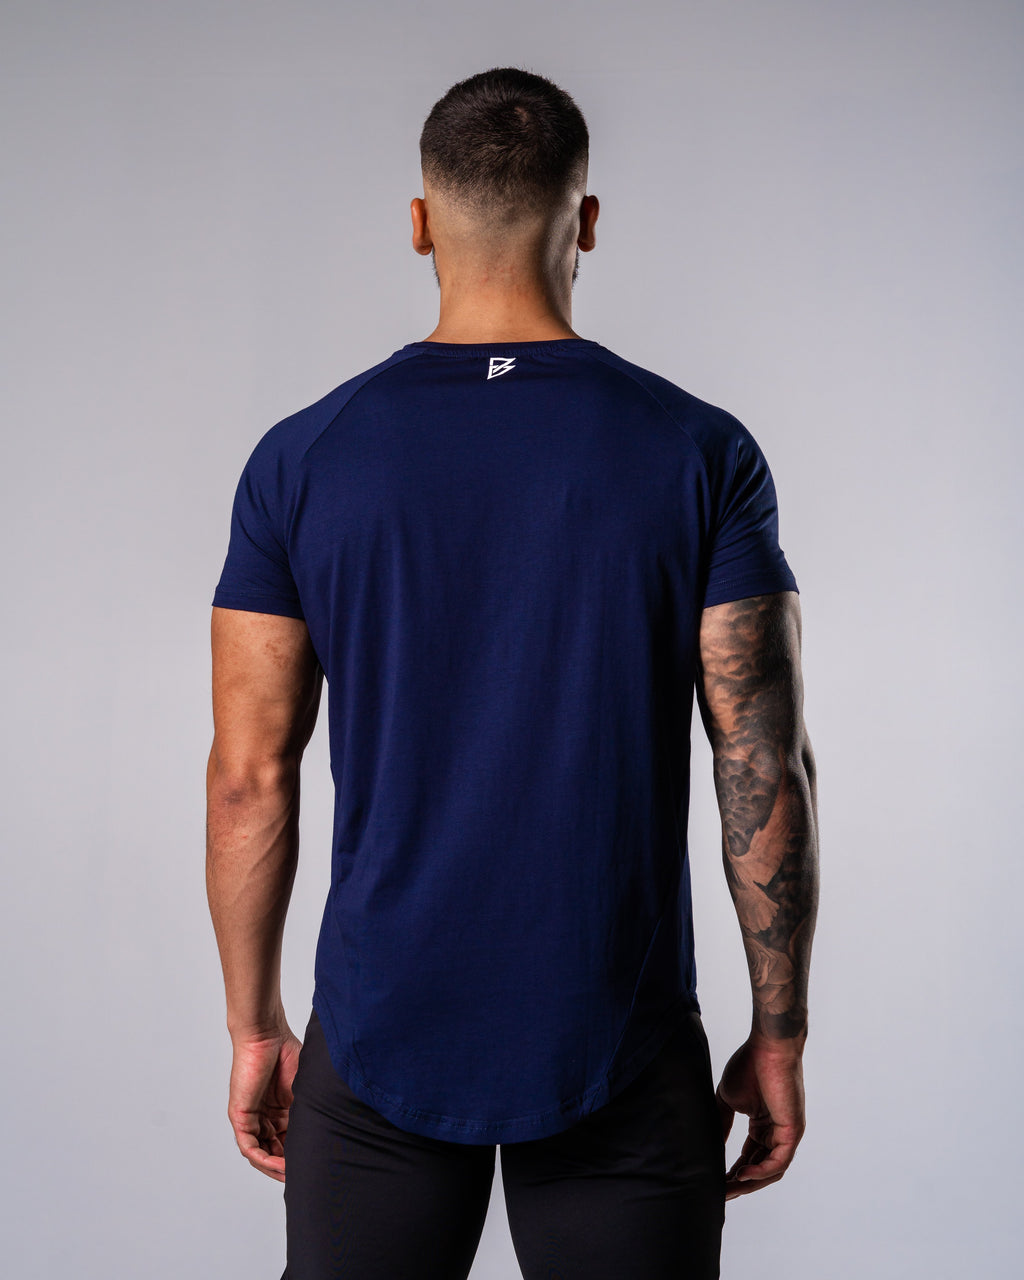 Flagship Performance Tee - Navy - FIO Athletics